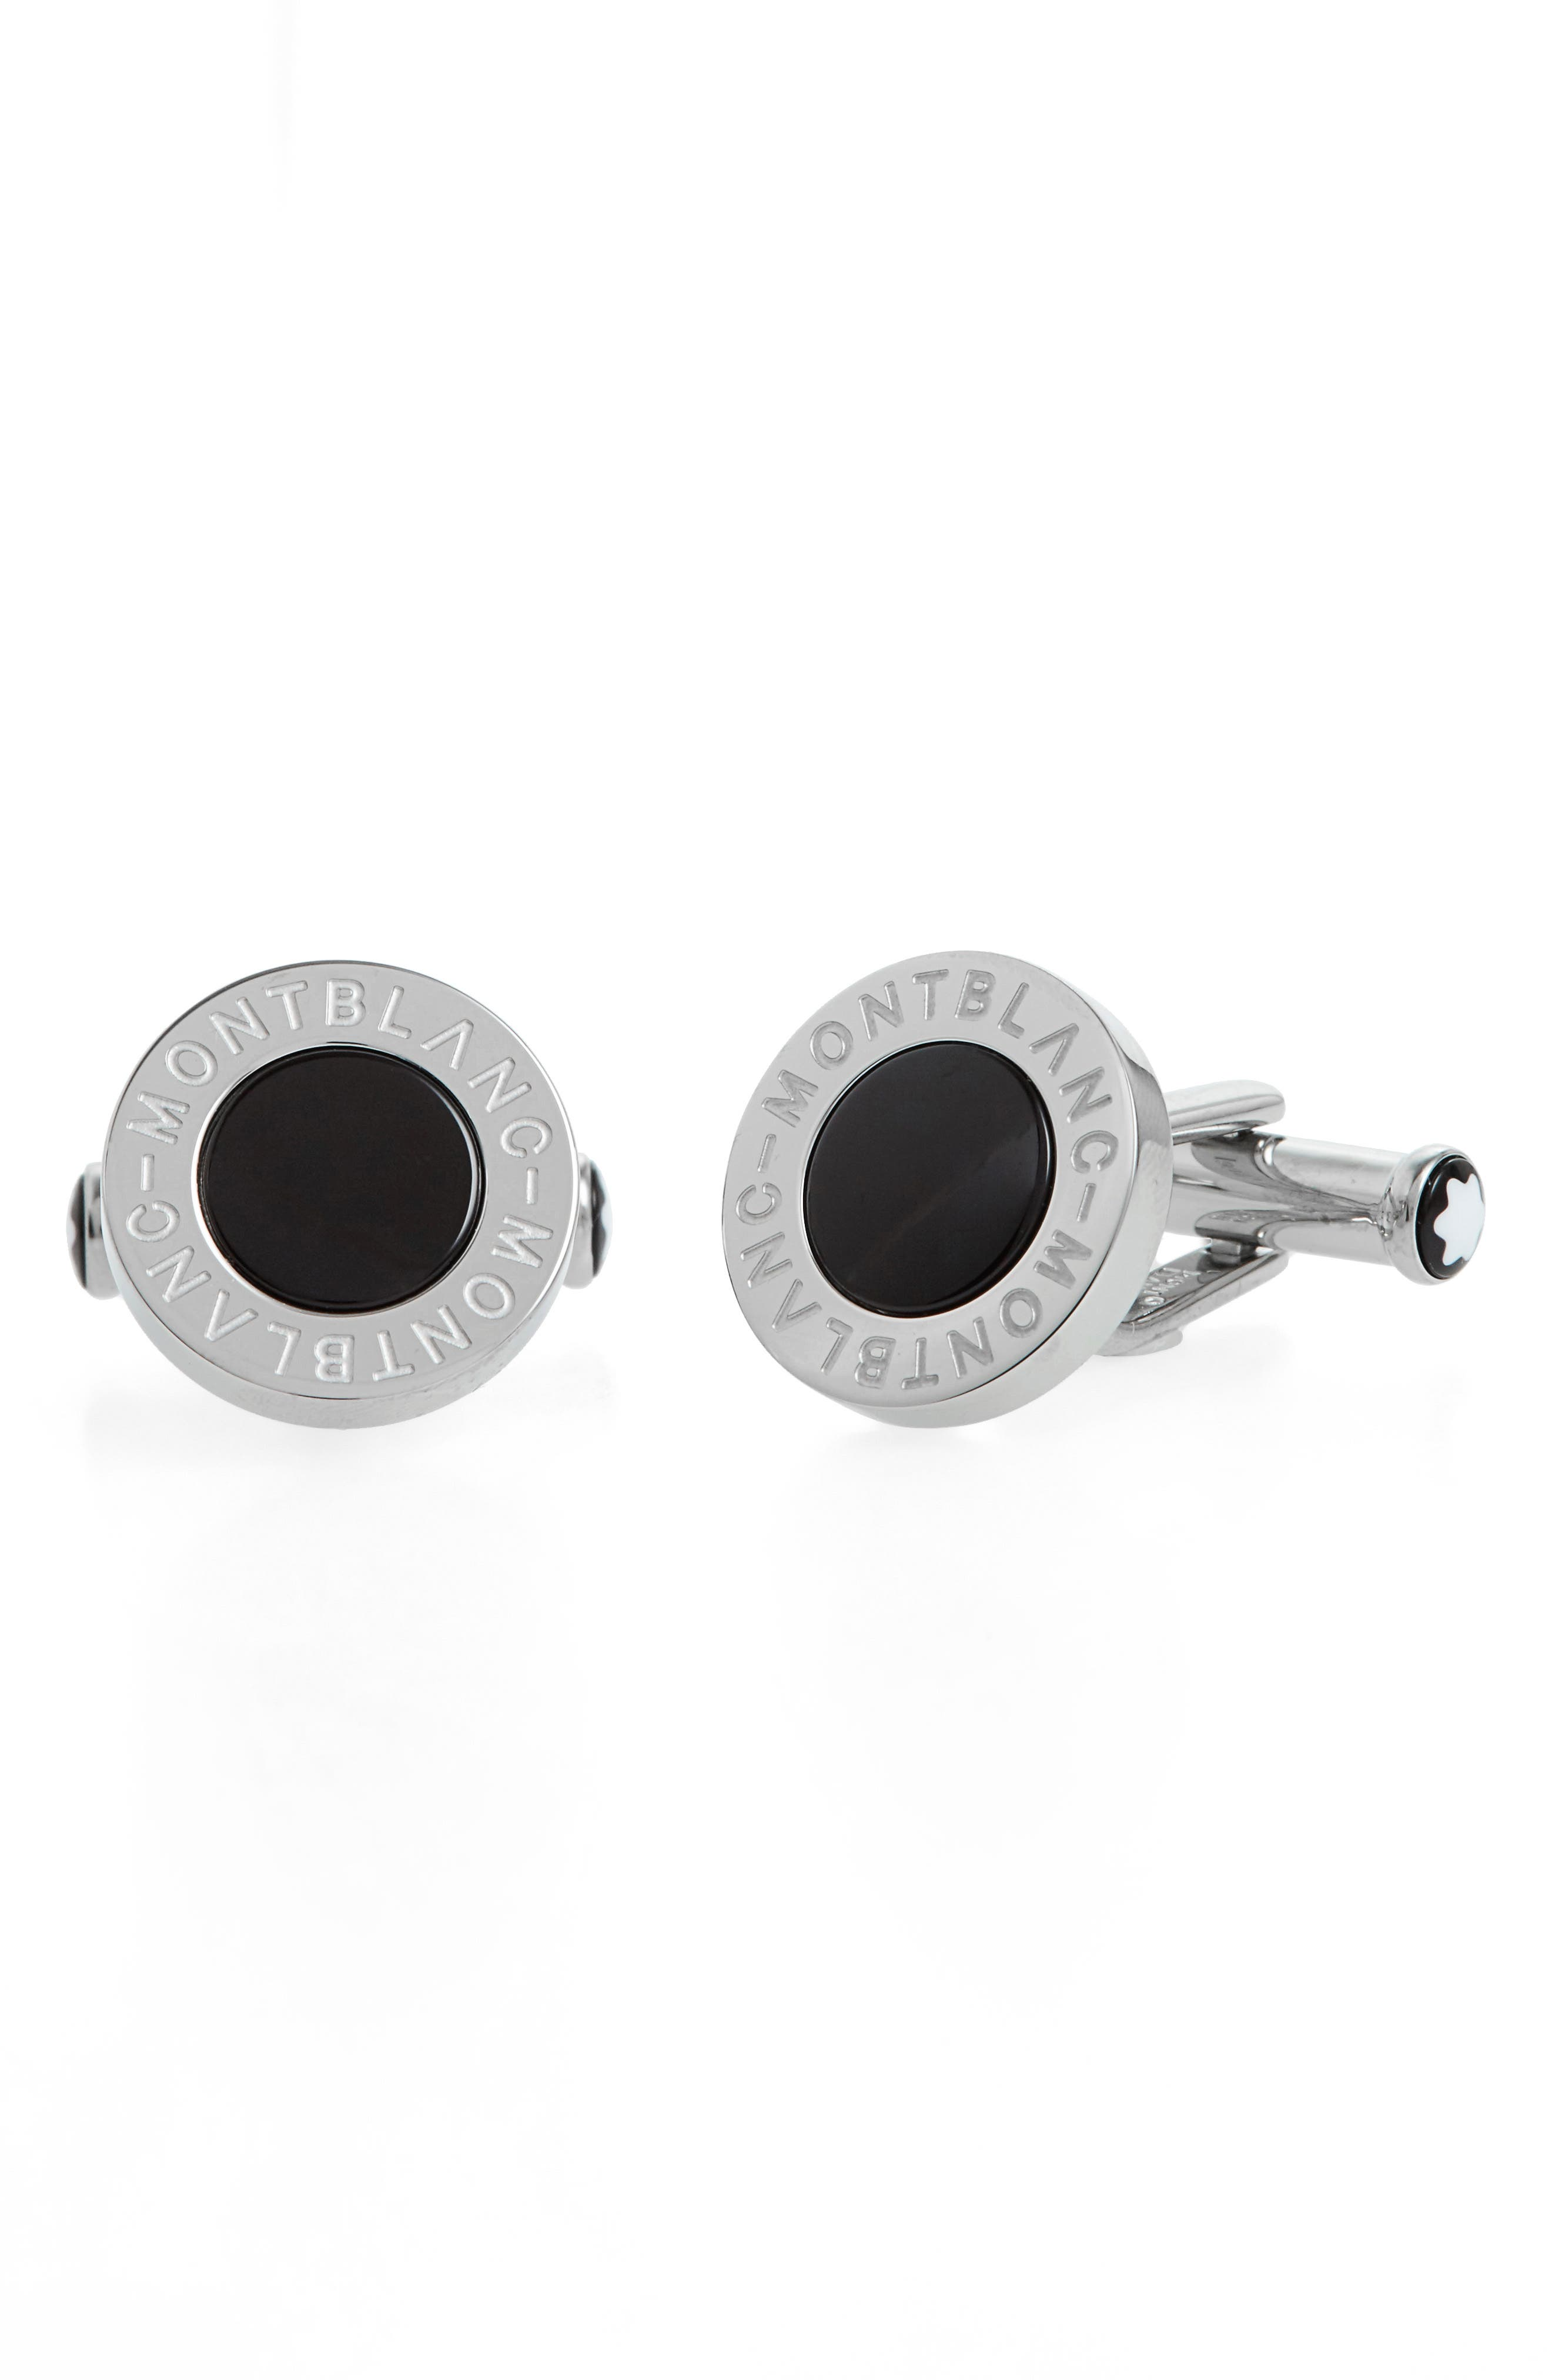 MONTBLANC, Onyx Cuff Links, Main thumbnail 1, color, BLACK